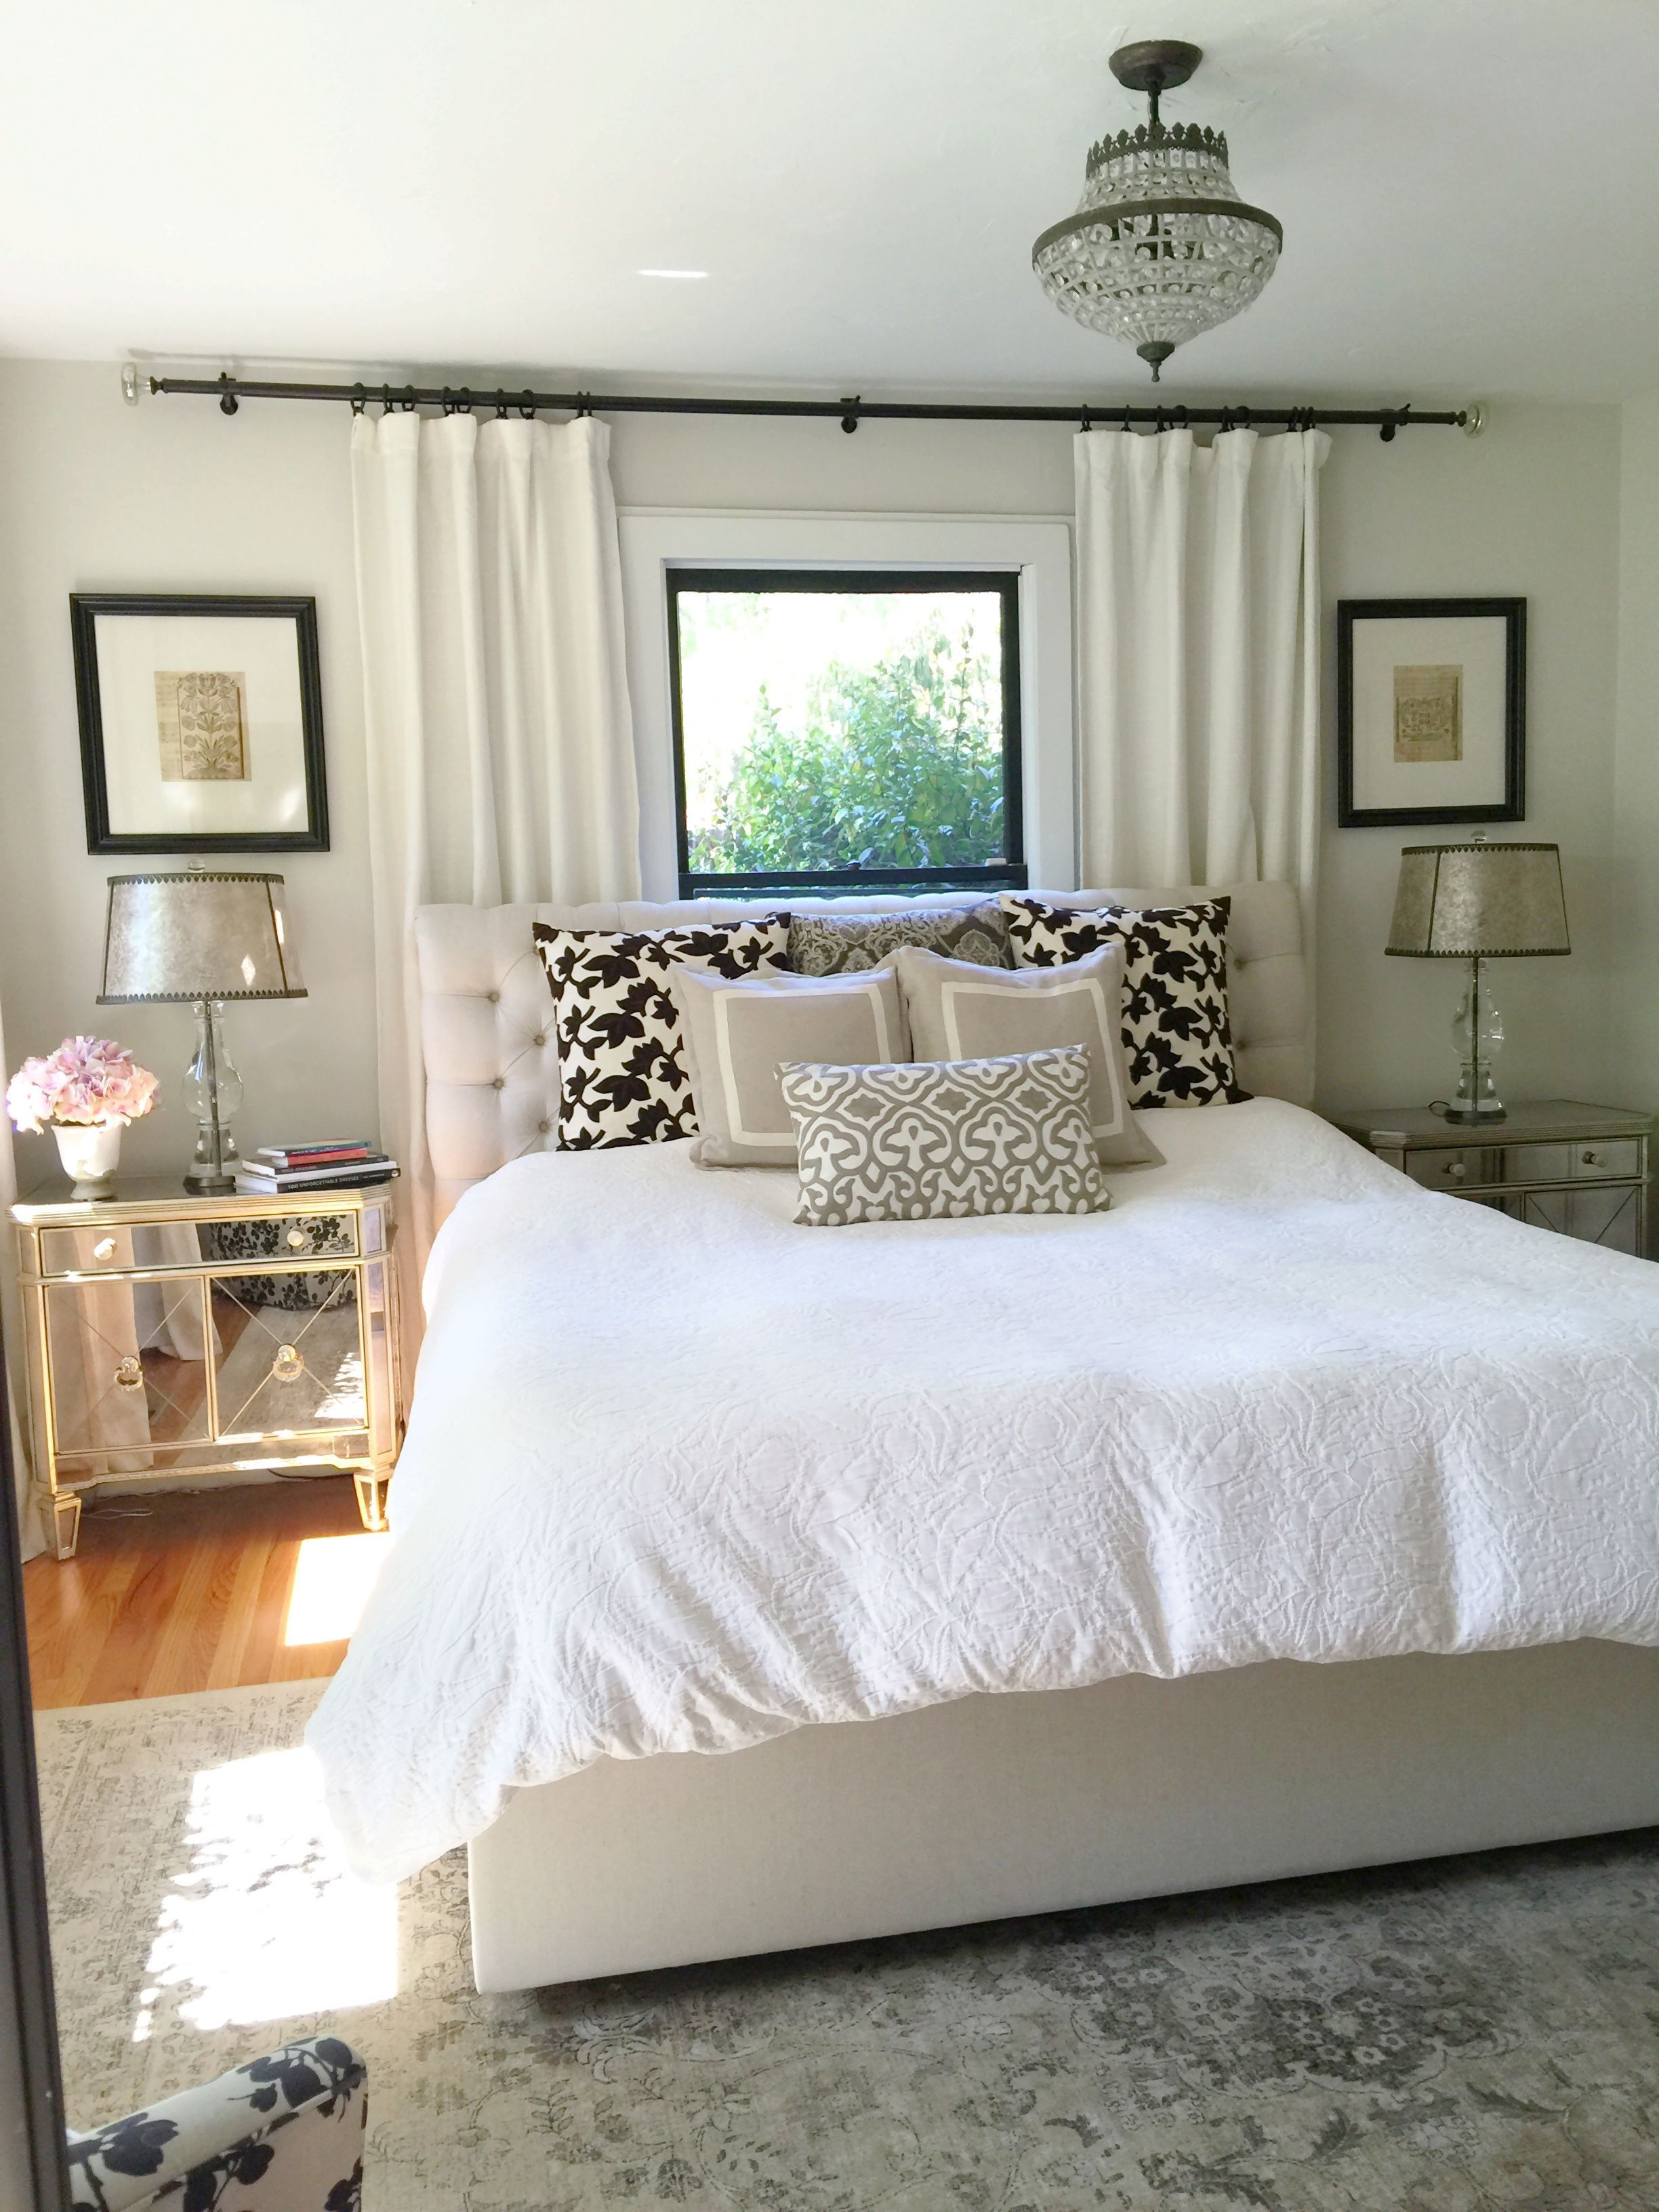 30 Small Master Bedroom Ideas With King Size Bed Bedroom Interior